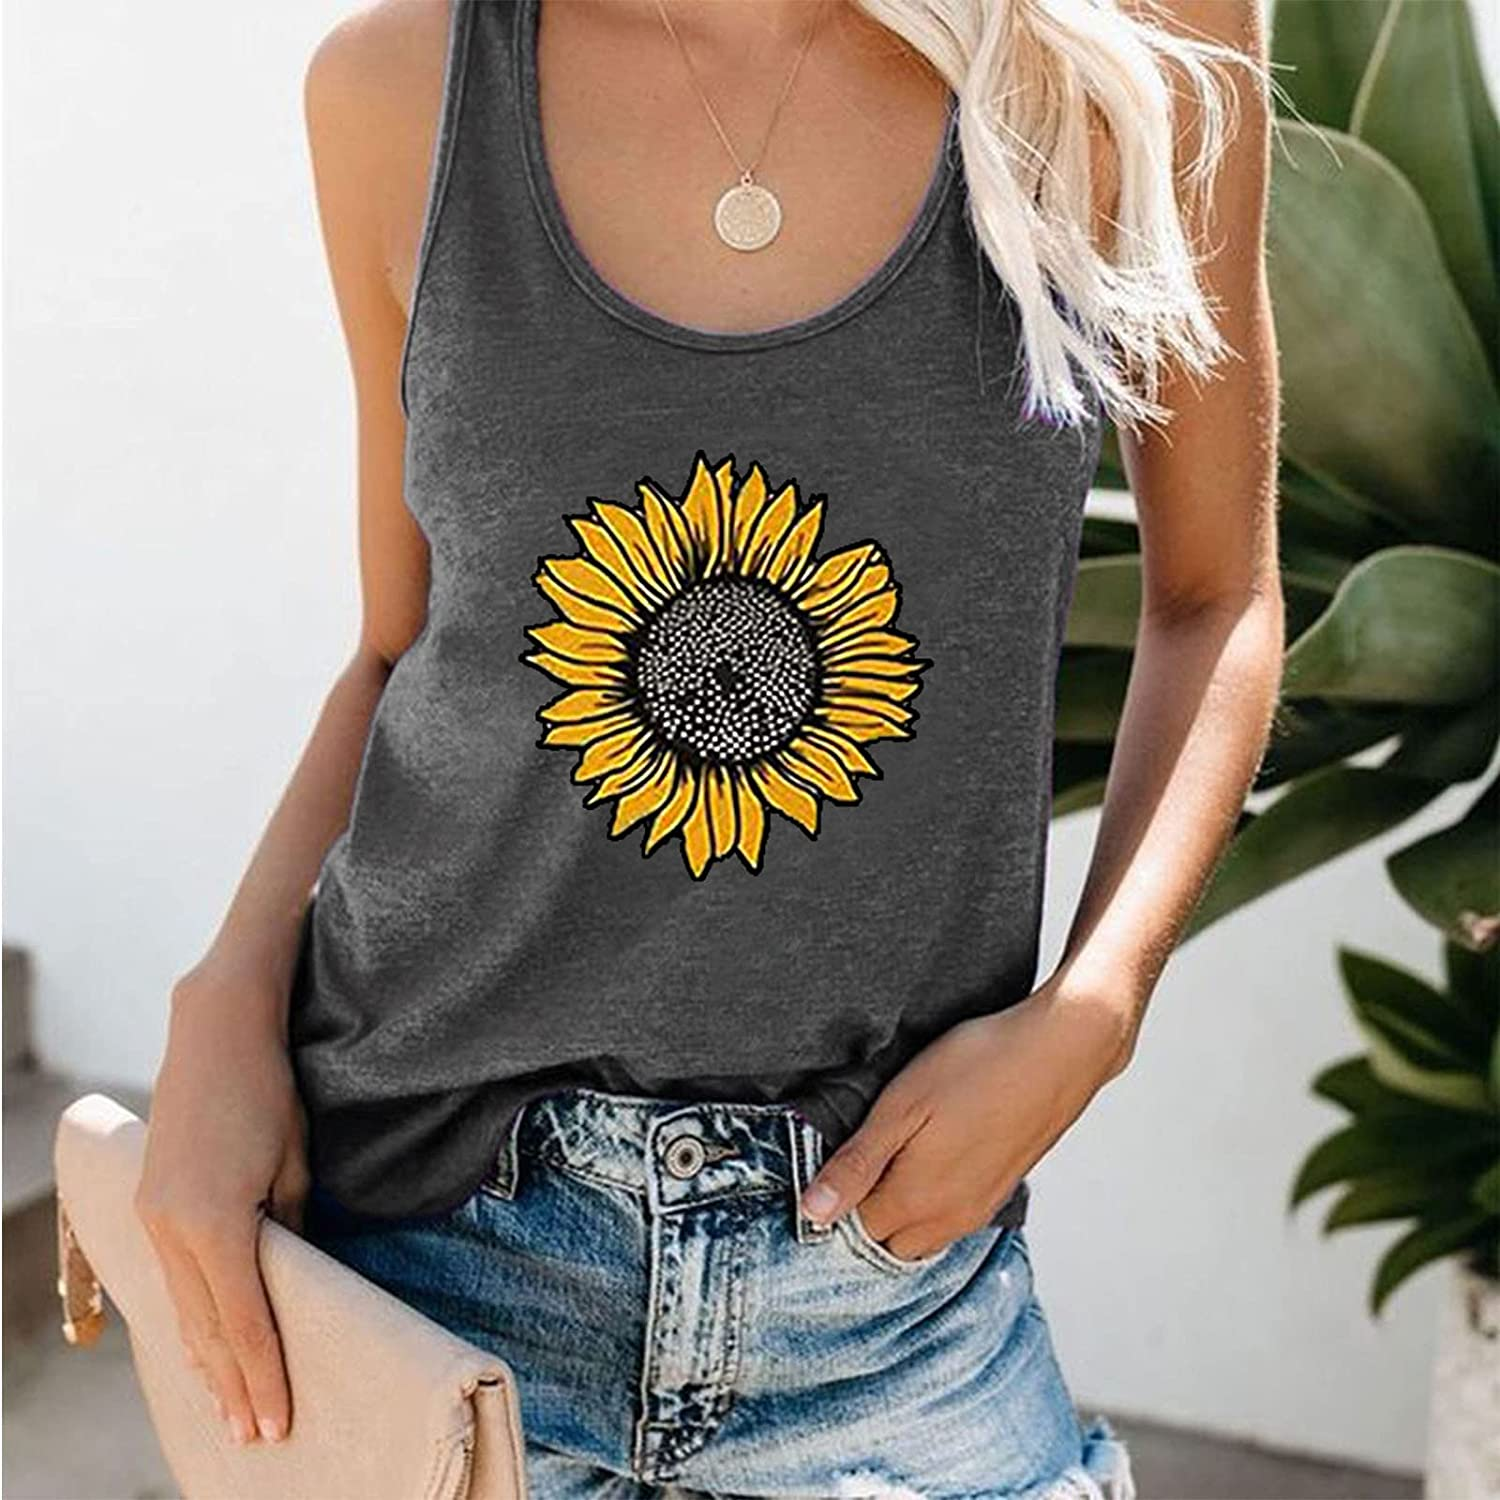 Womens Tank Tops Summer T Shirts Sleeveless Casual Loose Tunic Blouses Sunflower Graphic Tees Workout Athletic Yoga Vest